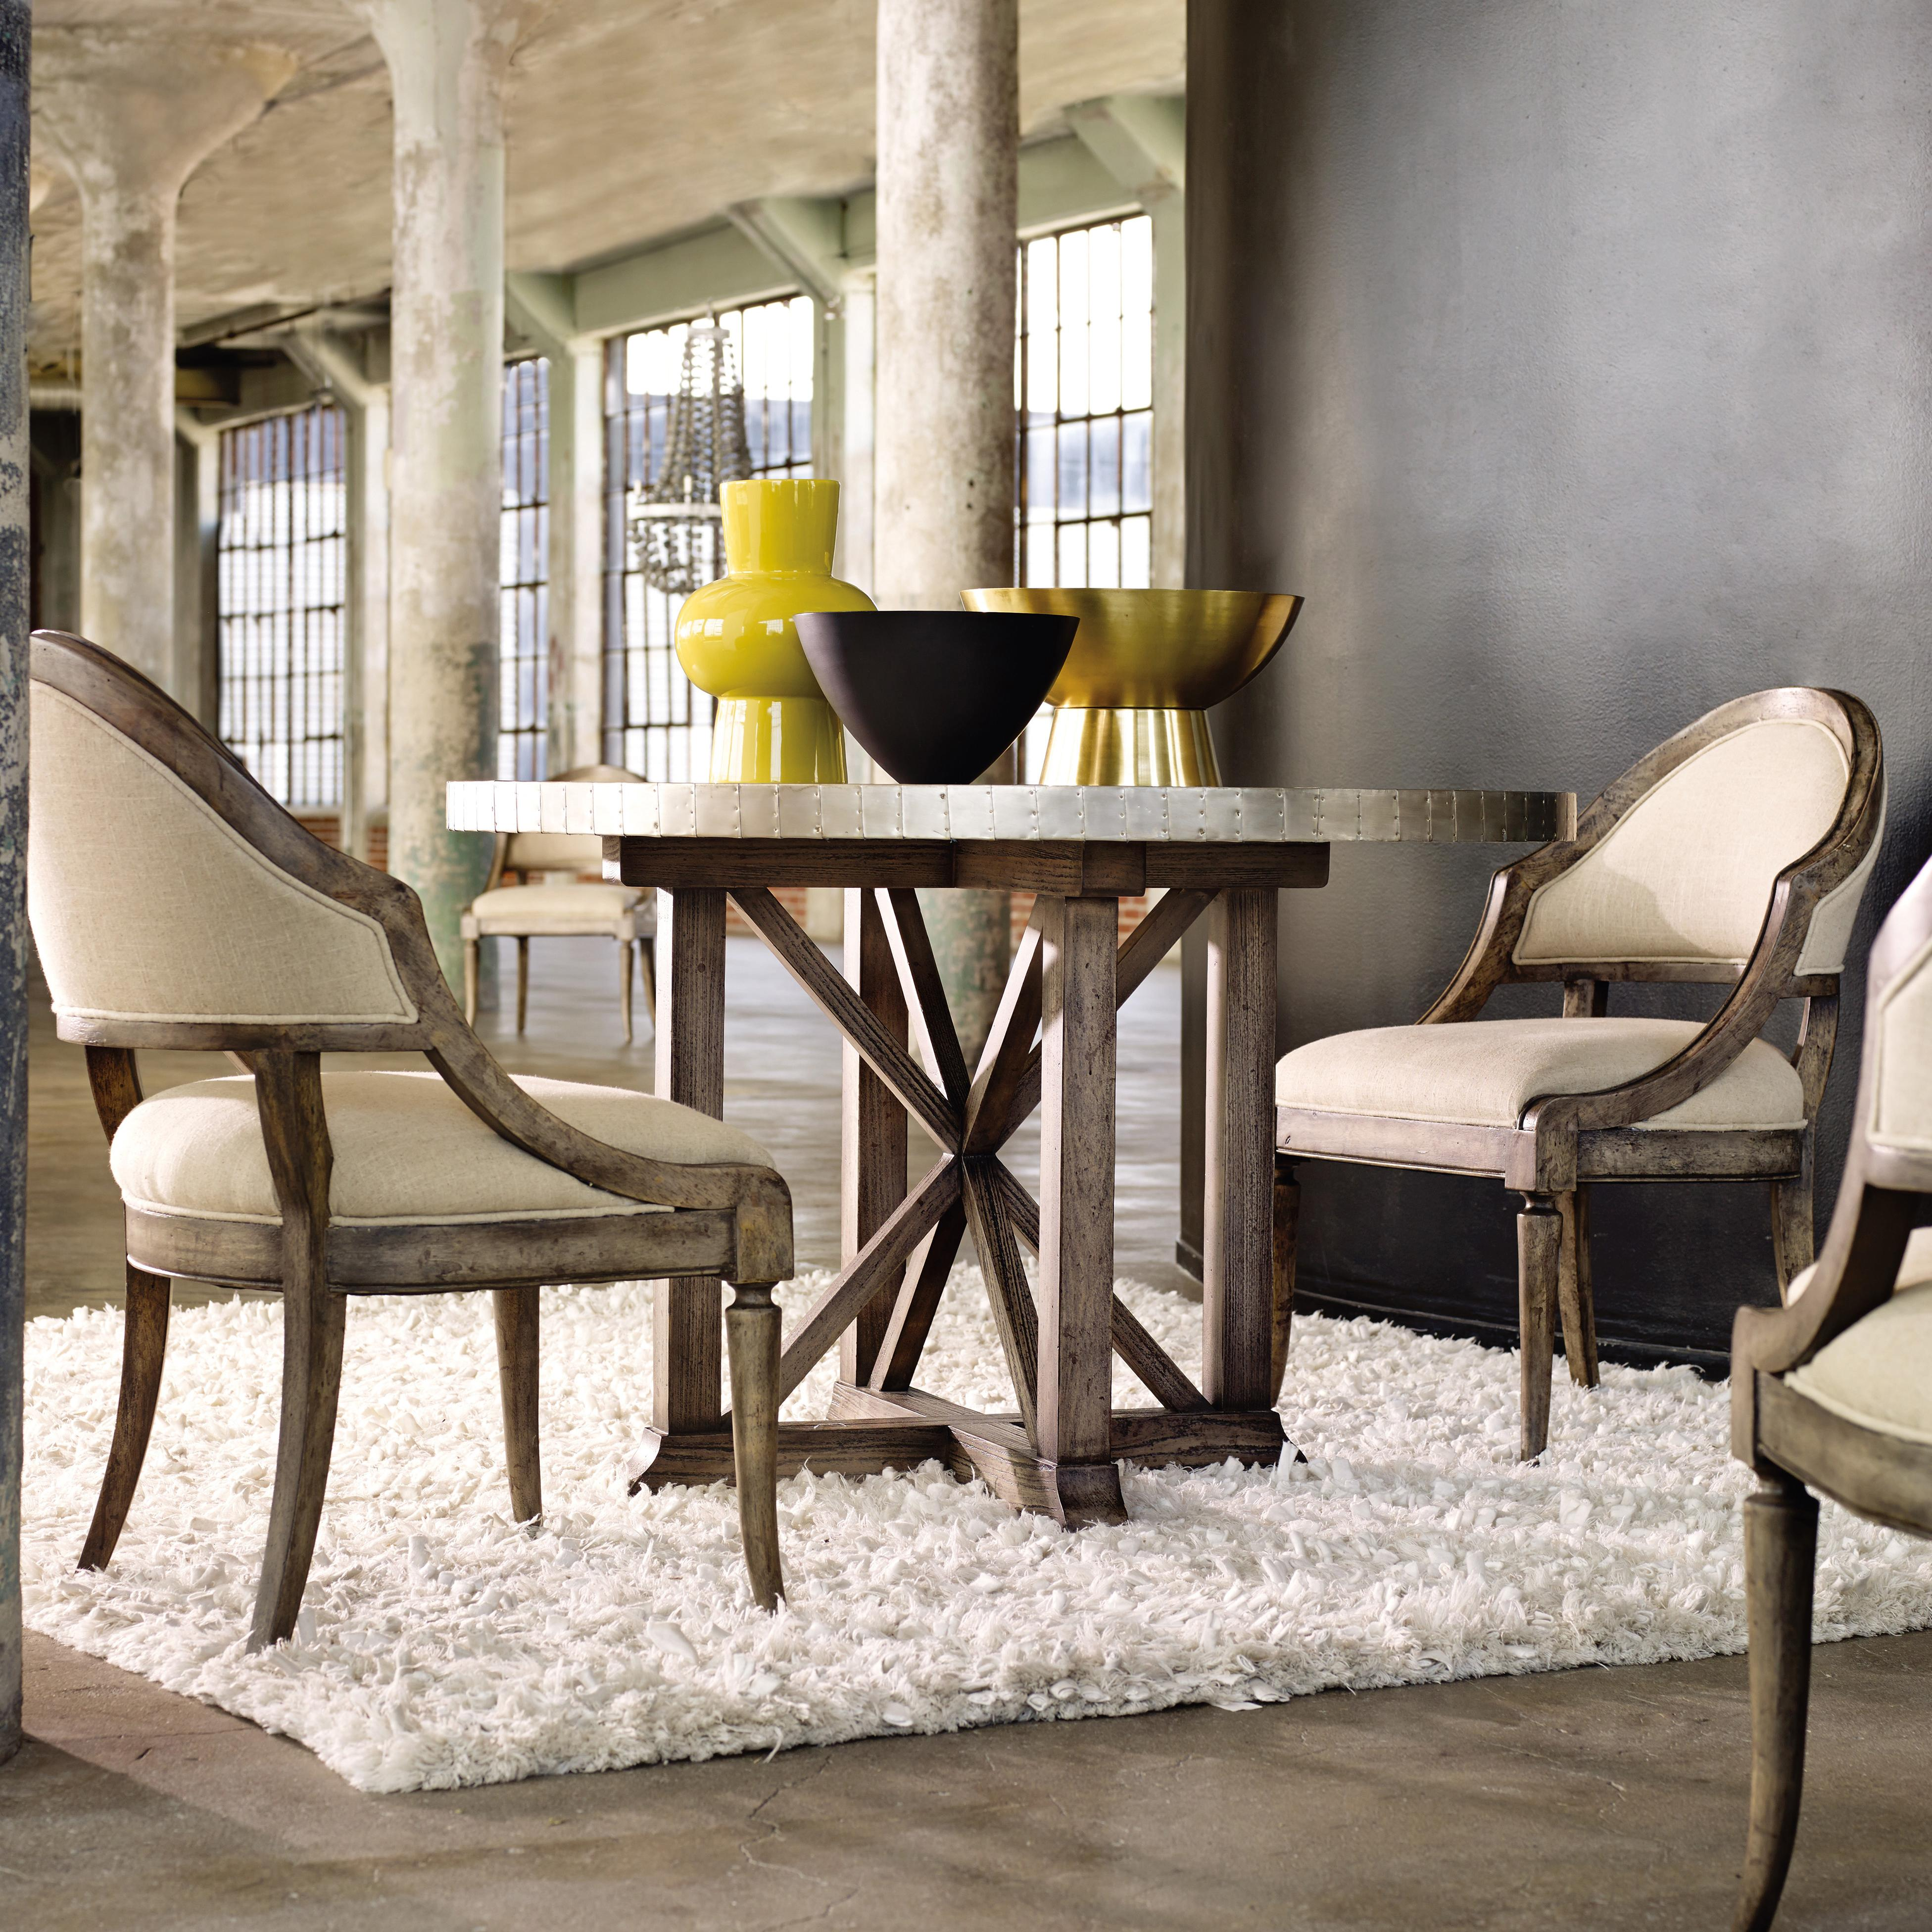 Hooker Furniture Mélange 3 Piece Bentley Dining Set - Item Number: 638-75009+2x13